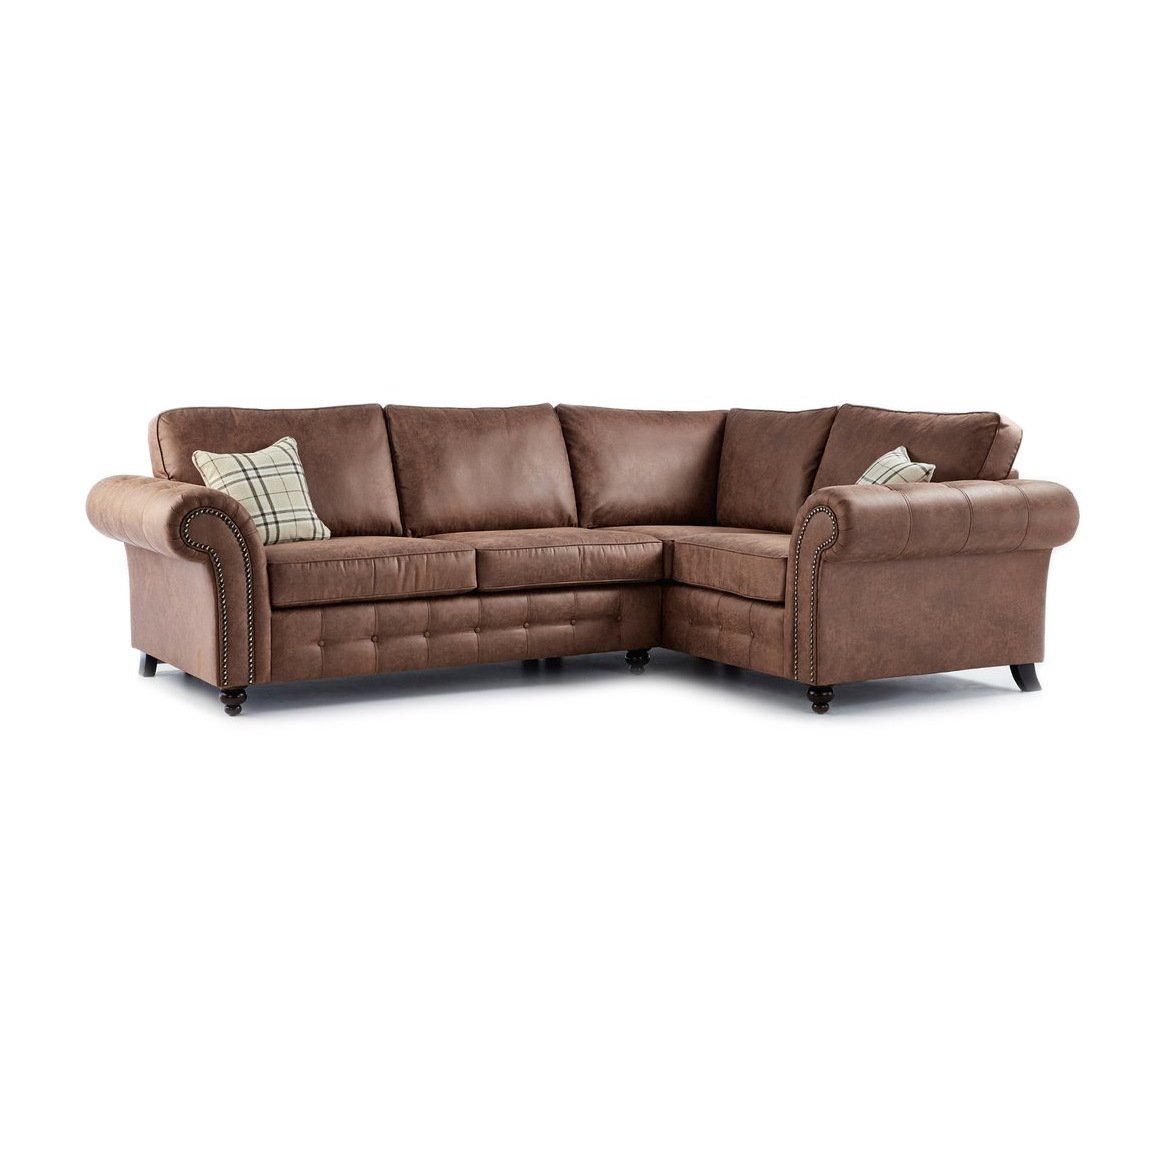 Oakland Faux Leather Right Hand Corner Sofa in Brown